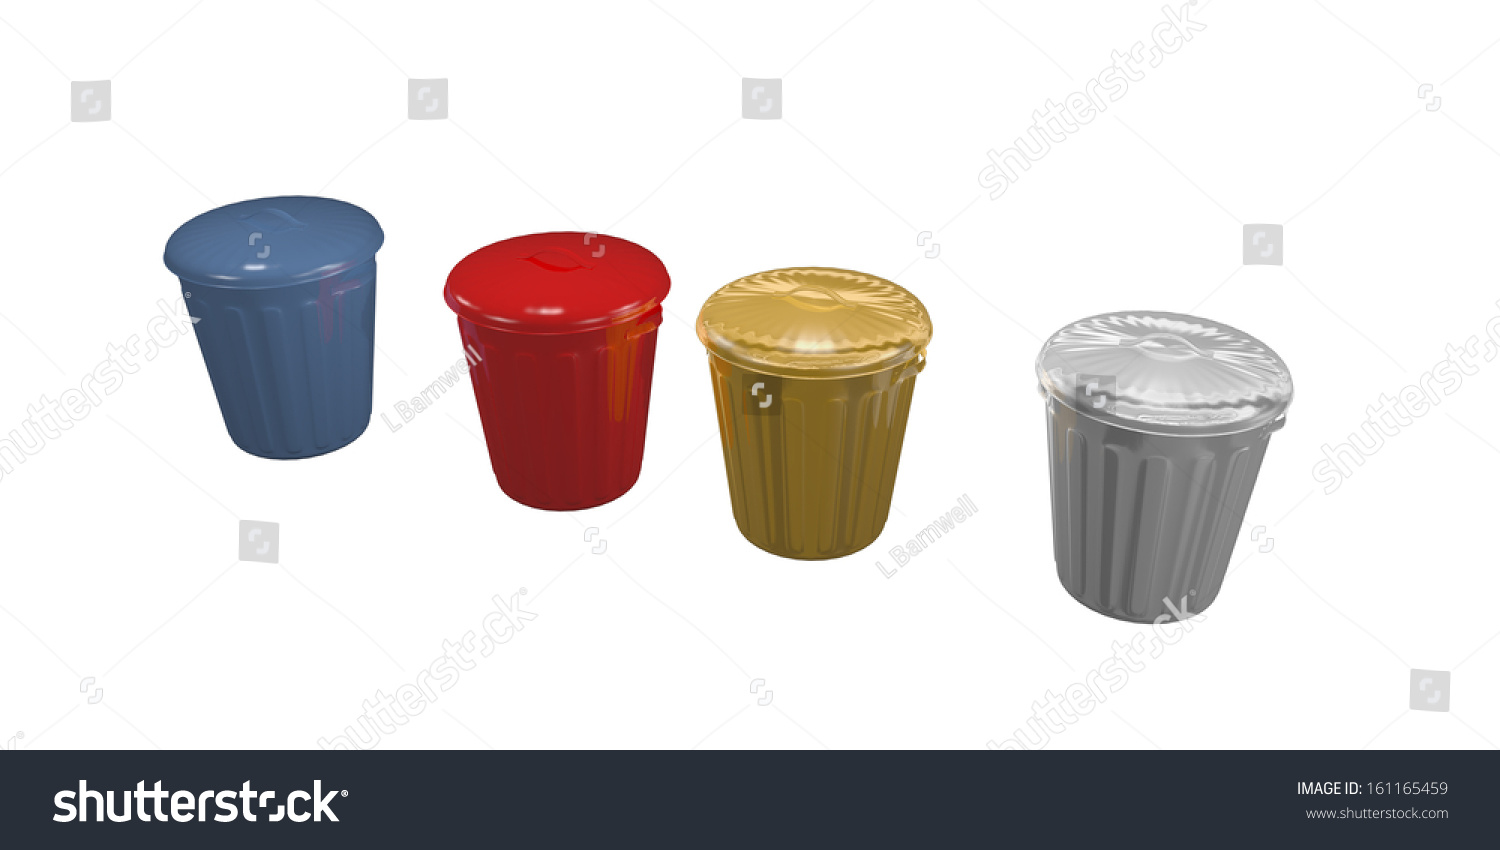 Silver Trash Cans Blue Red Gold And Silver Trash Cans Stock Photo